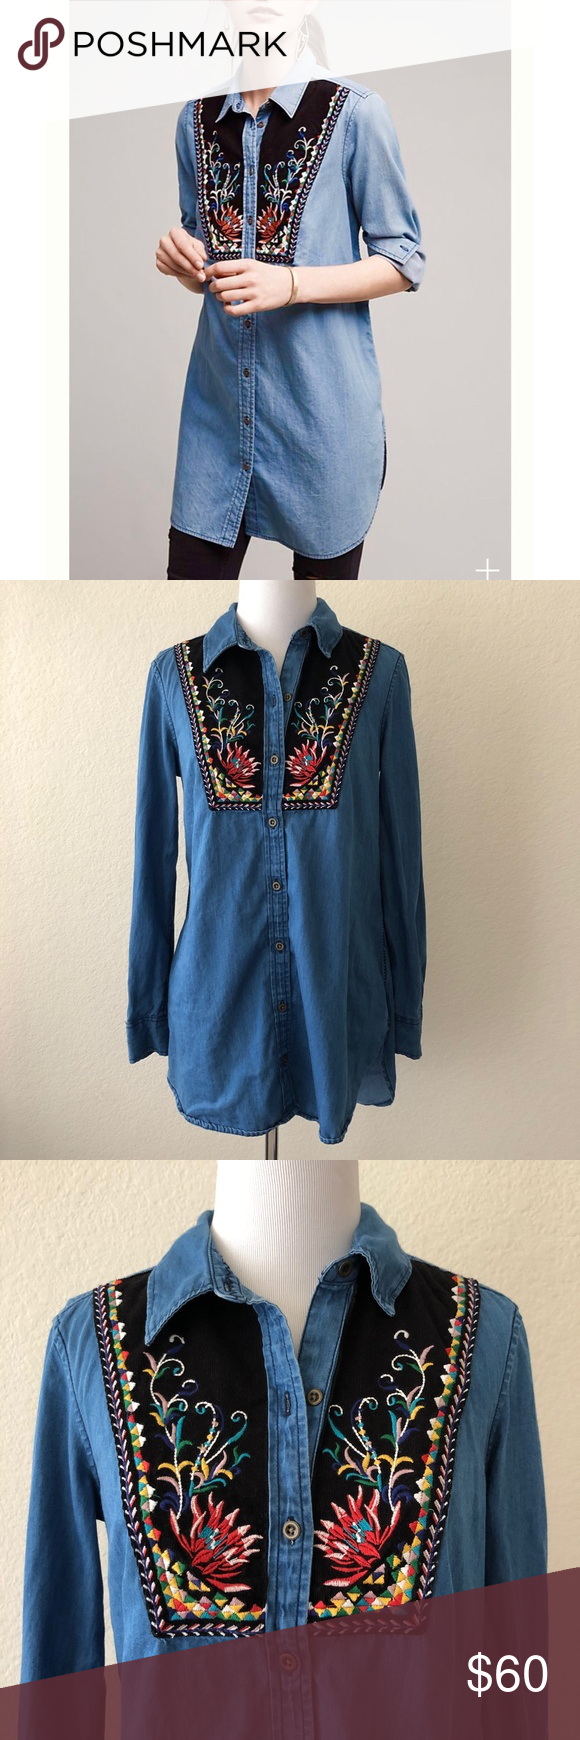 5c146fc5367 Anthropologie Holding Horses Murelet embroidered bib chambray button up tunic  top size 0. B14. Measurements: Armpit-armpit~17.5